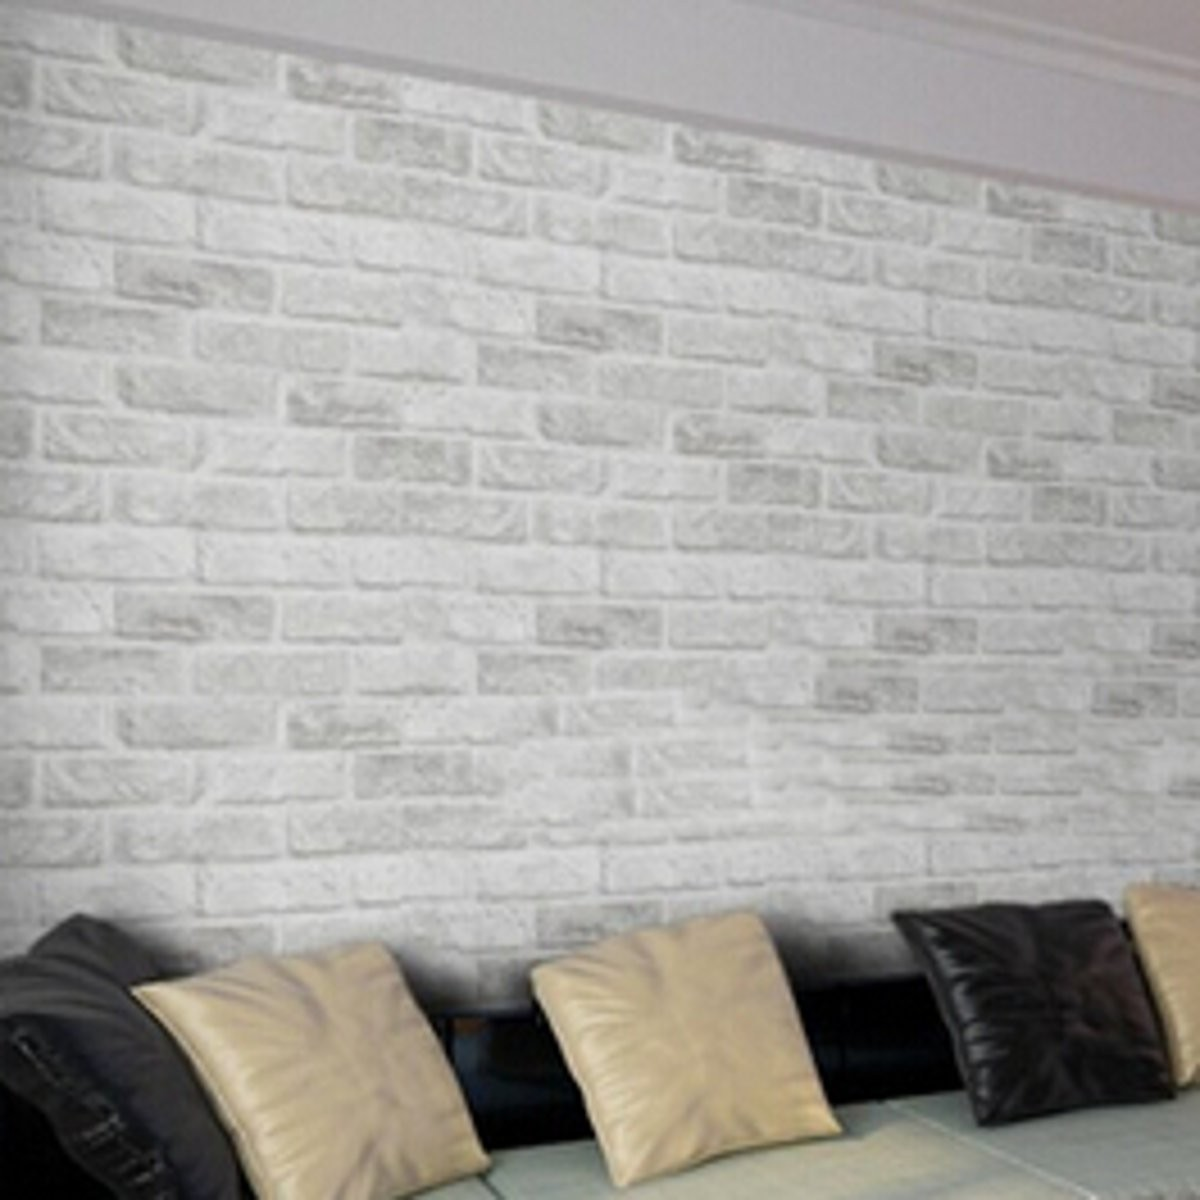 Wall Decor Contact Paper : M white grey brick stone prepasted adhesive contact